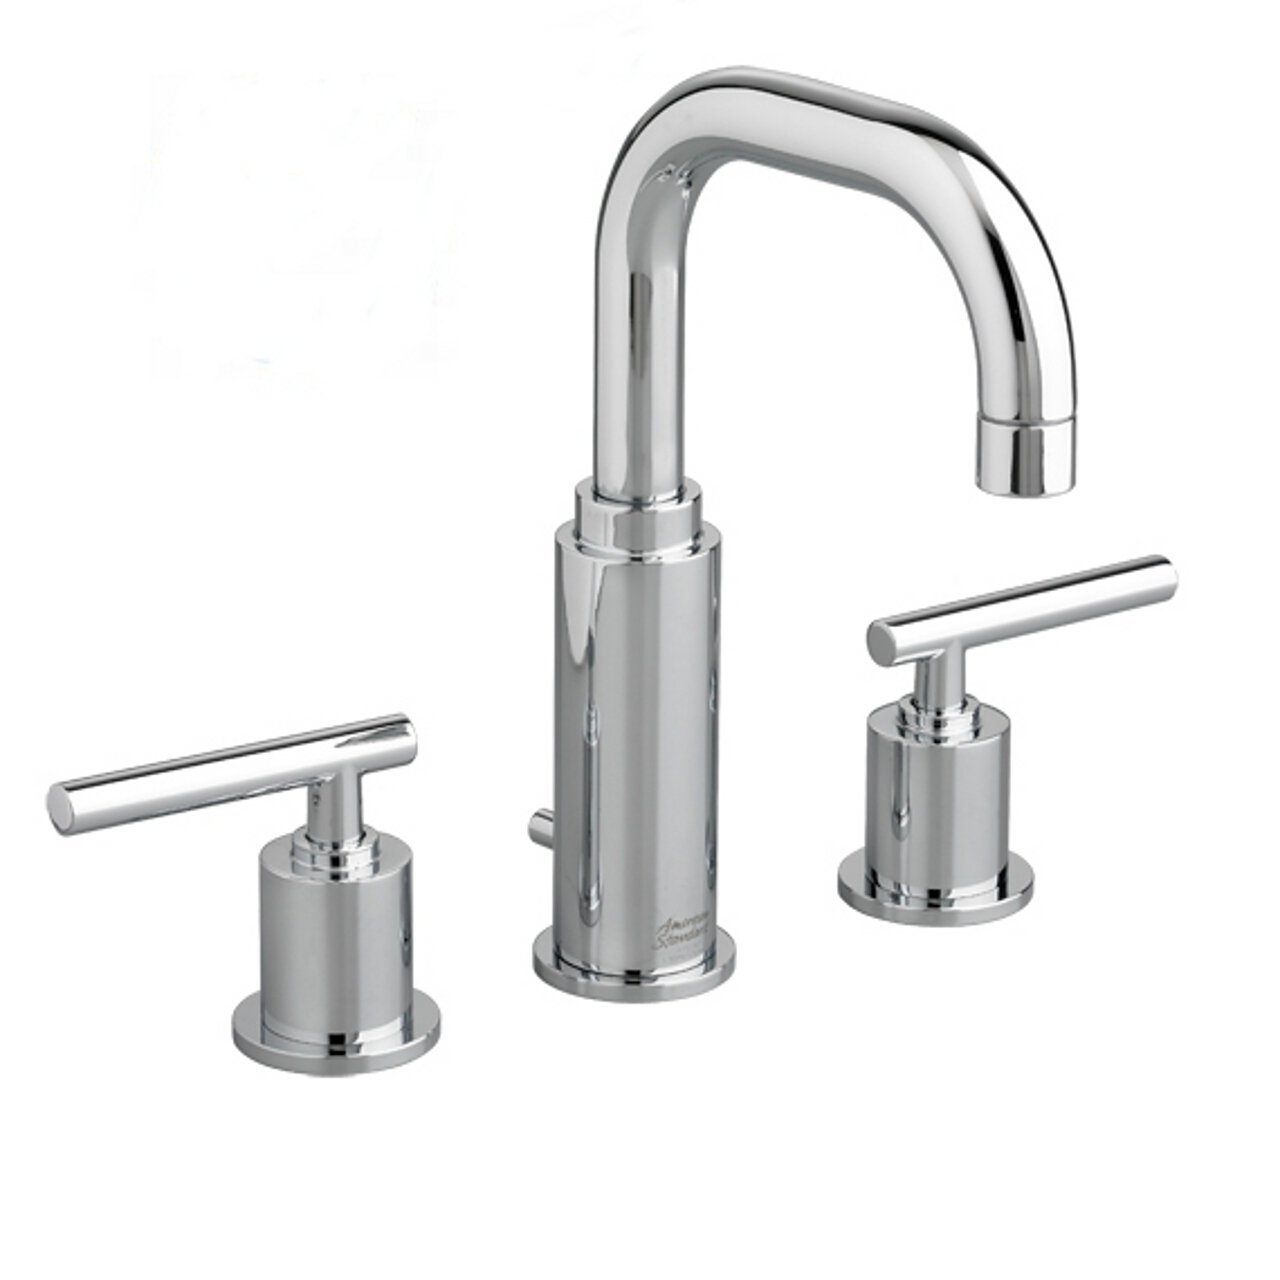 Amazon com american standard 2064 831 002 serin widespread bathroom sink faucet with metal pop up drain chrome home improvement